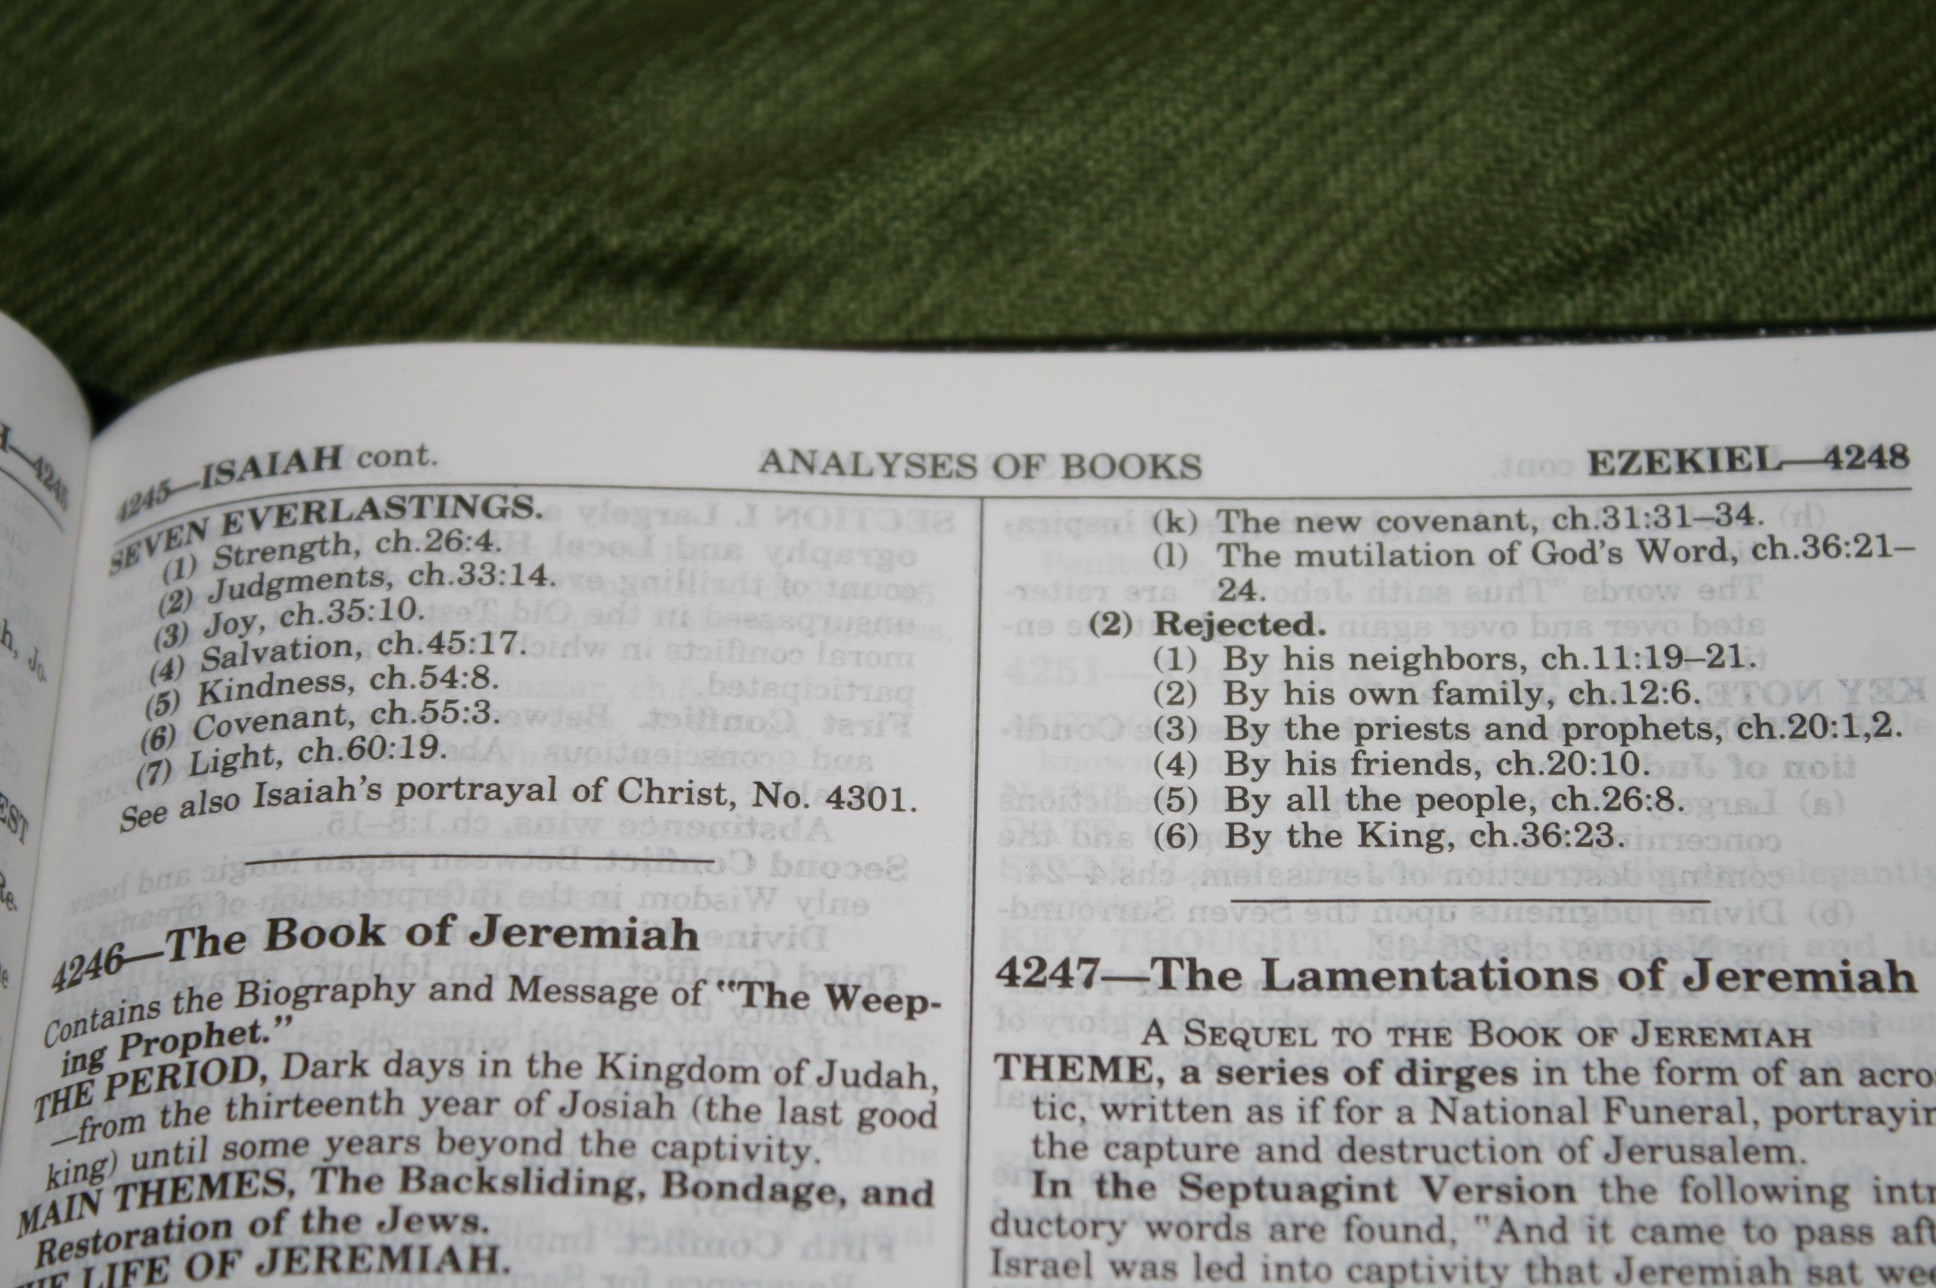 Handy Size Thompson Chain Reference Bible KJV (174)